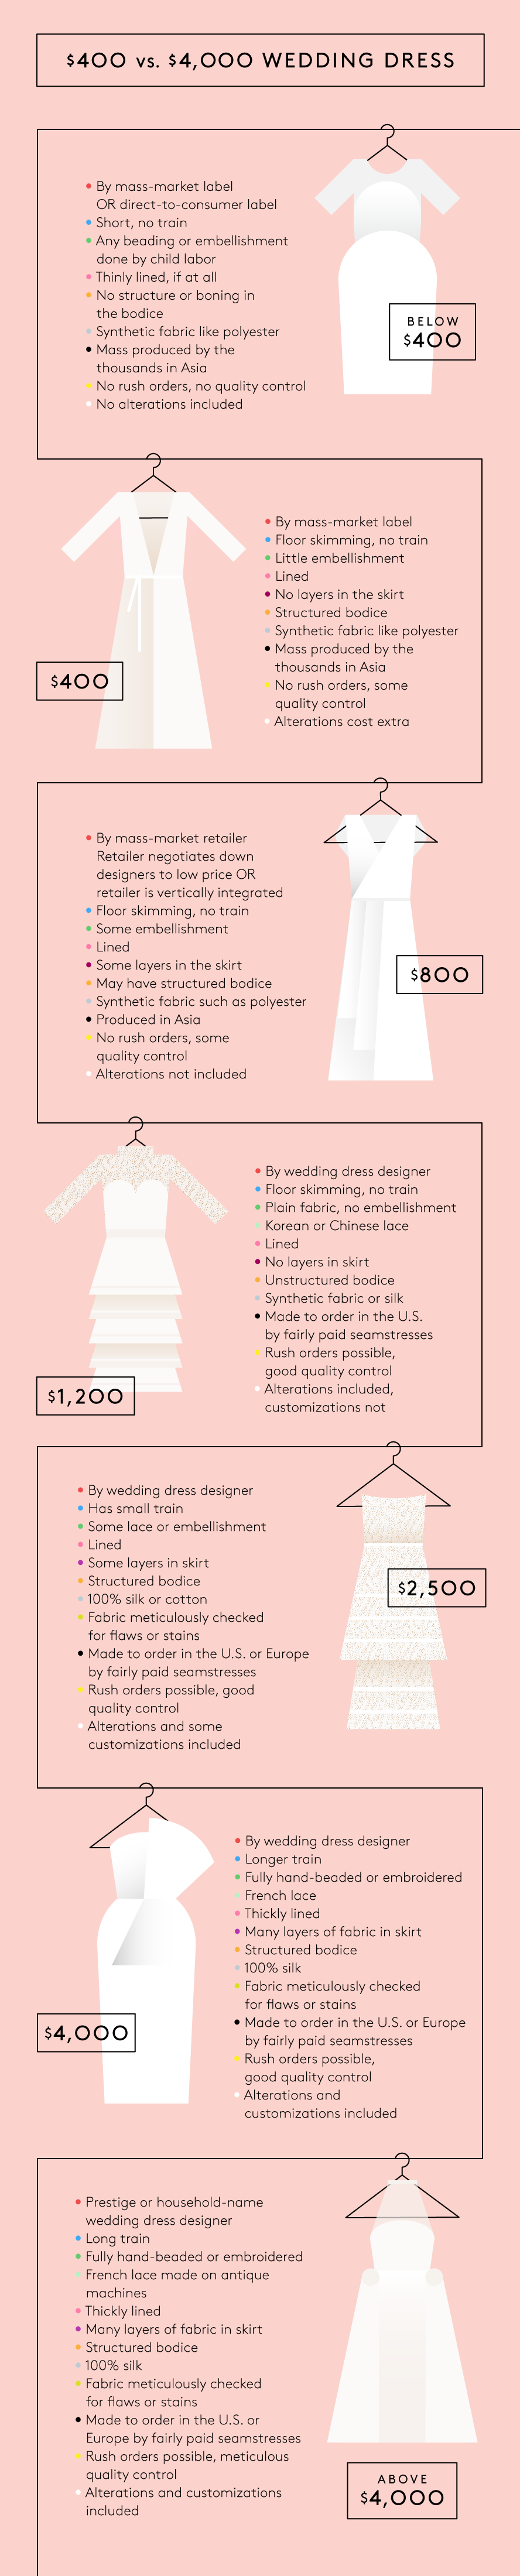 The Difference Between A $400 & $4,000 Wedding Dress